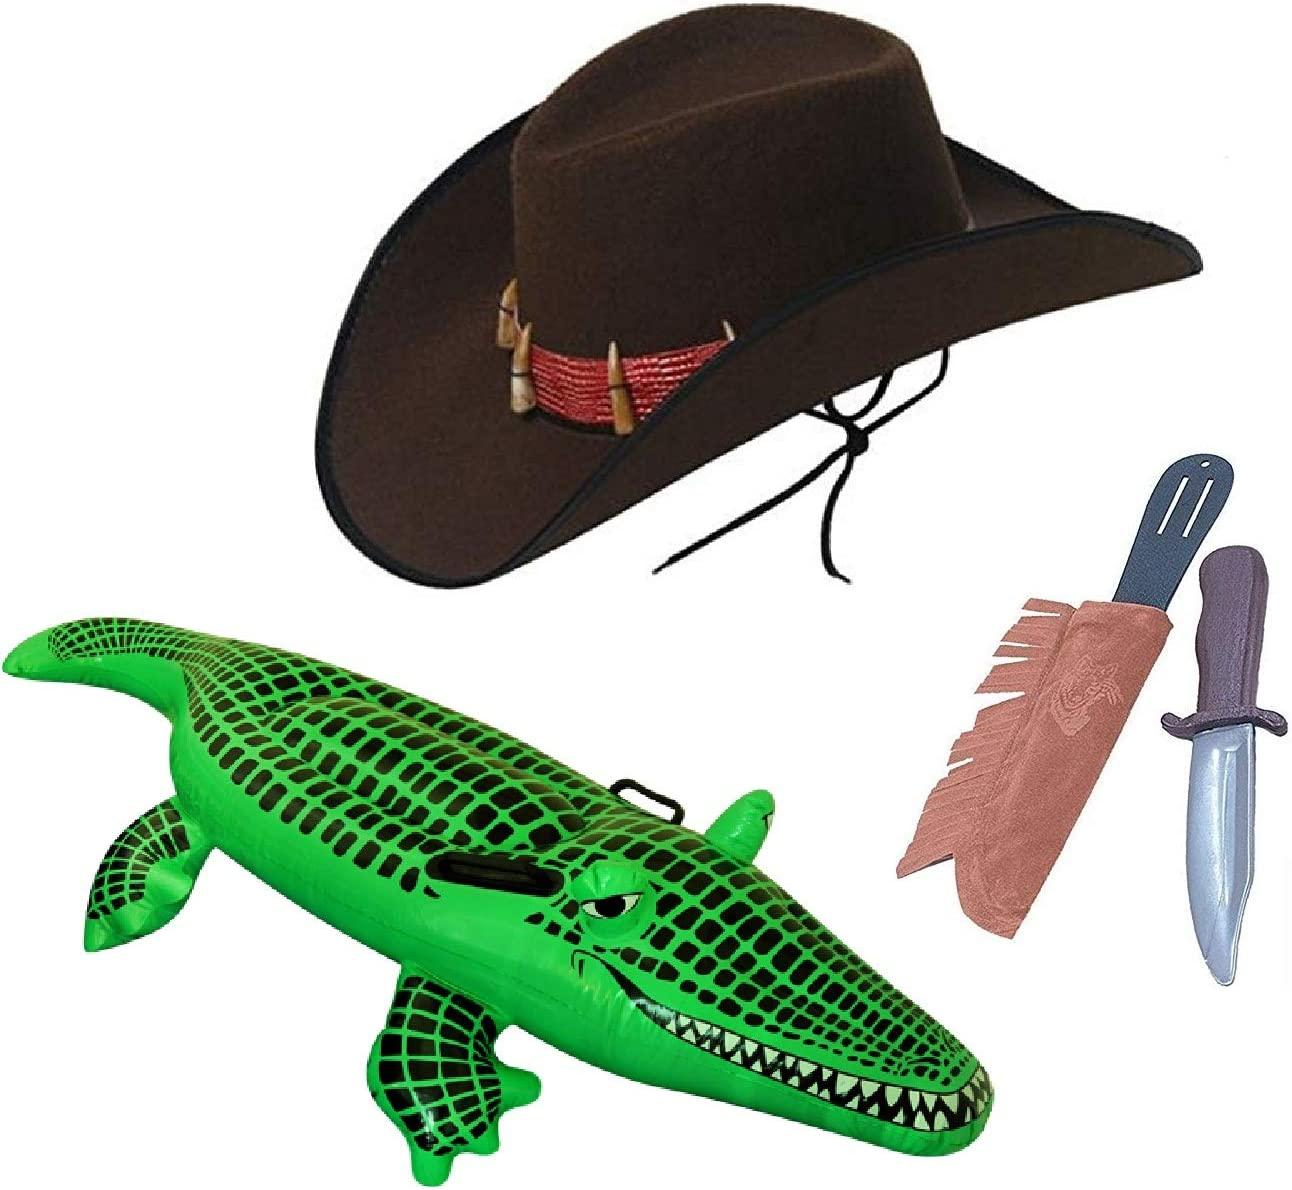 New Inflatable Crocodile Aligator Dundee Hunter Fancy Dress Party Accessory